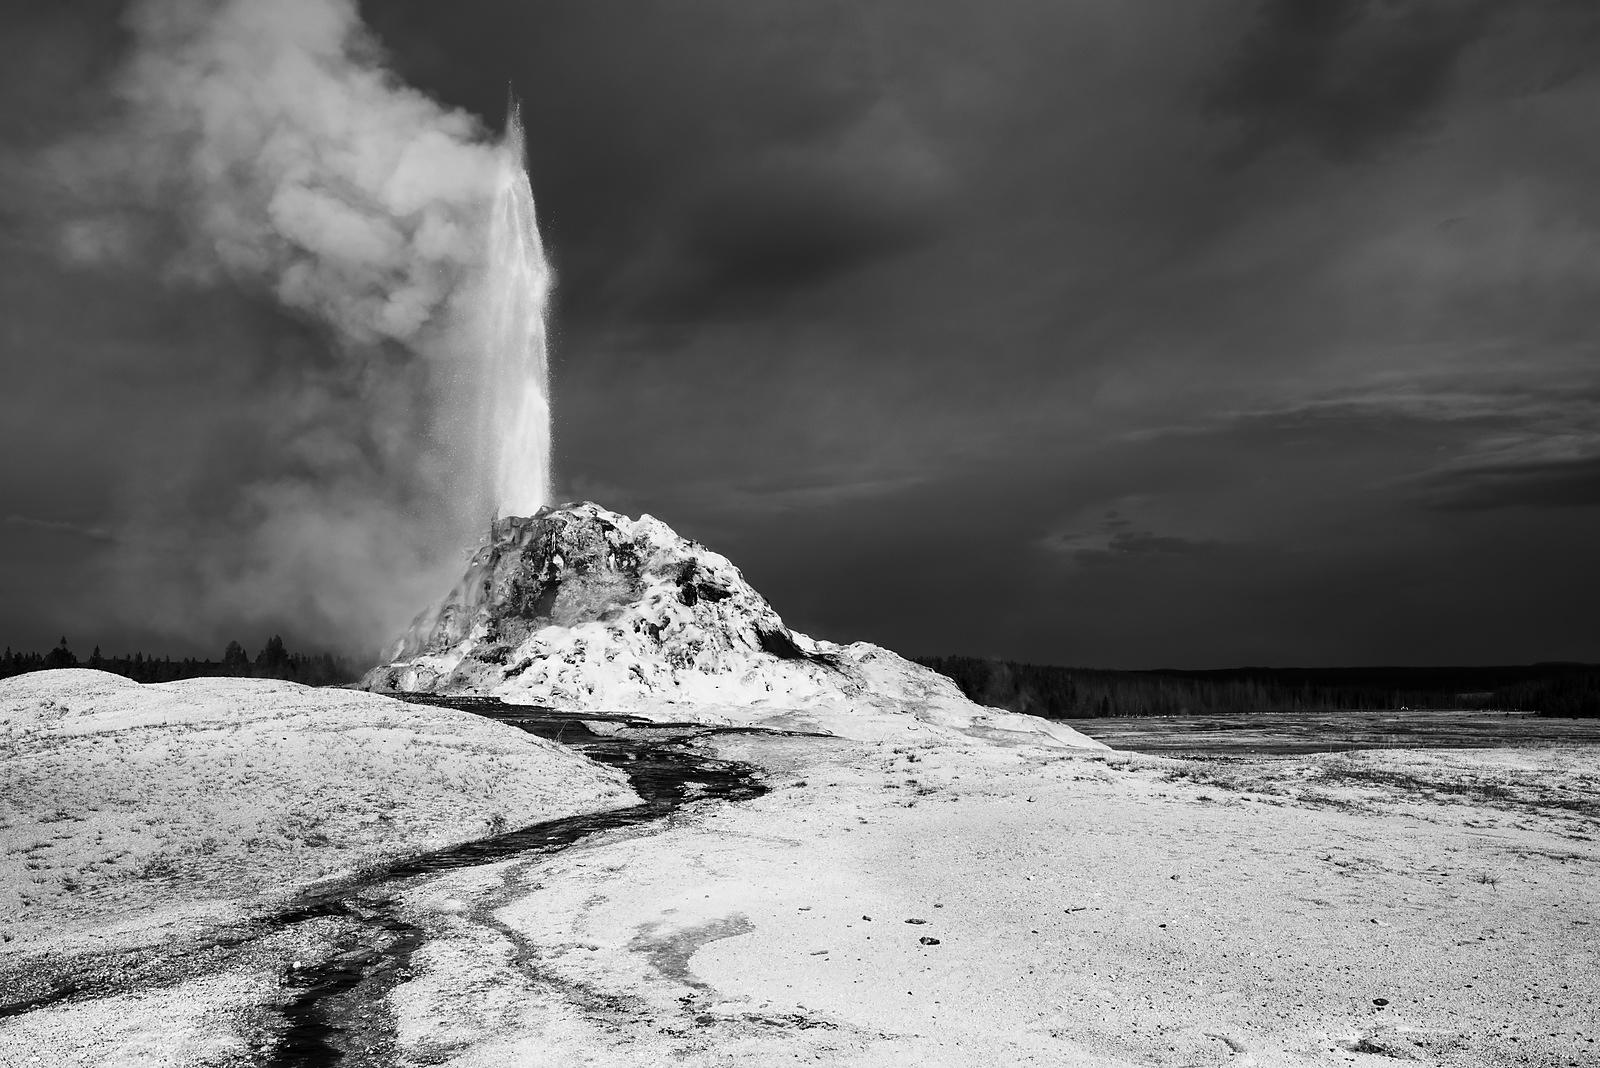 White Dome Geyser - Yellowstone